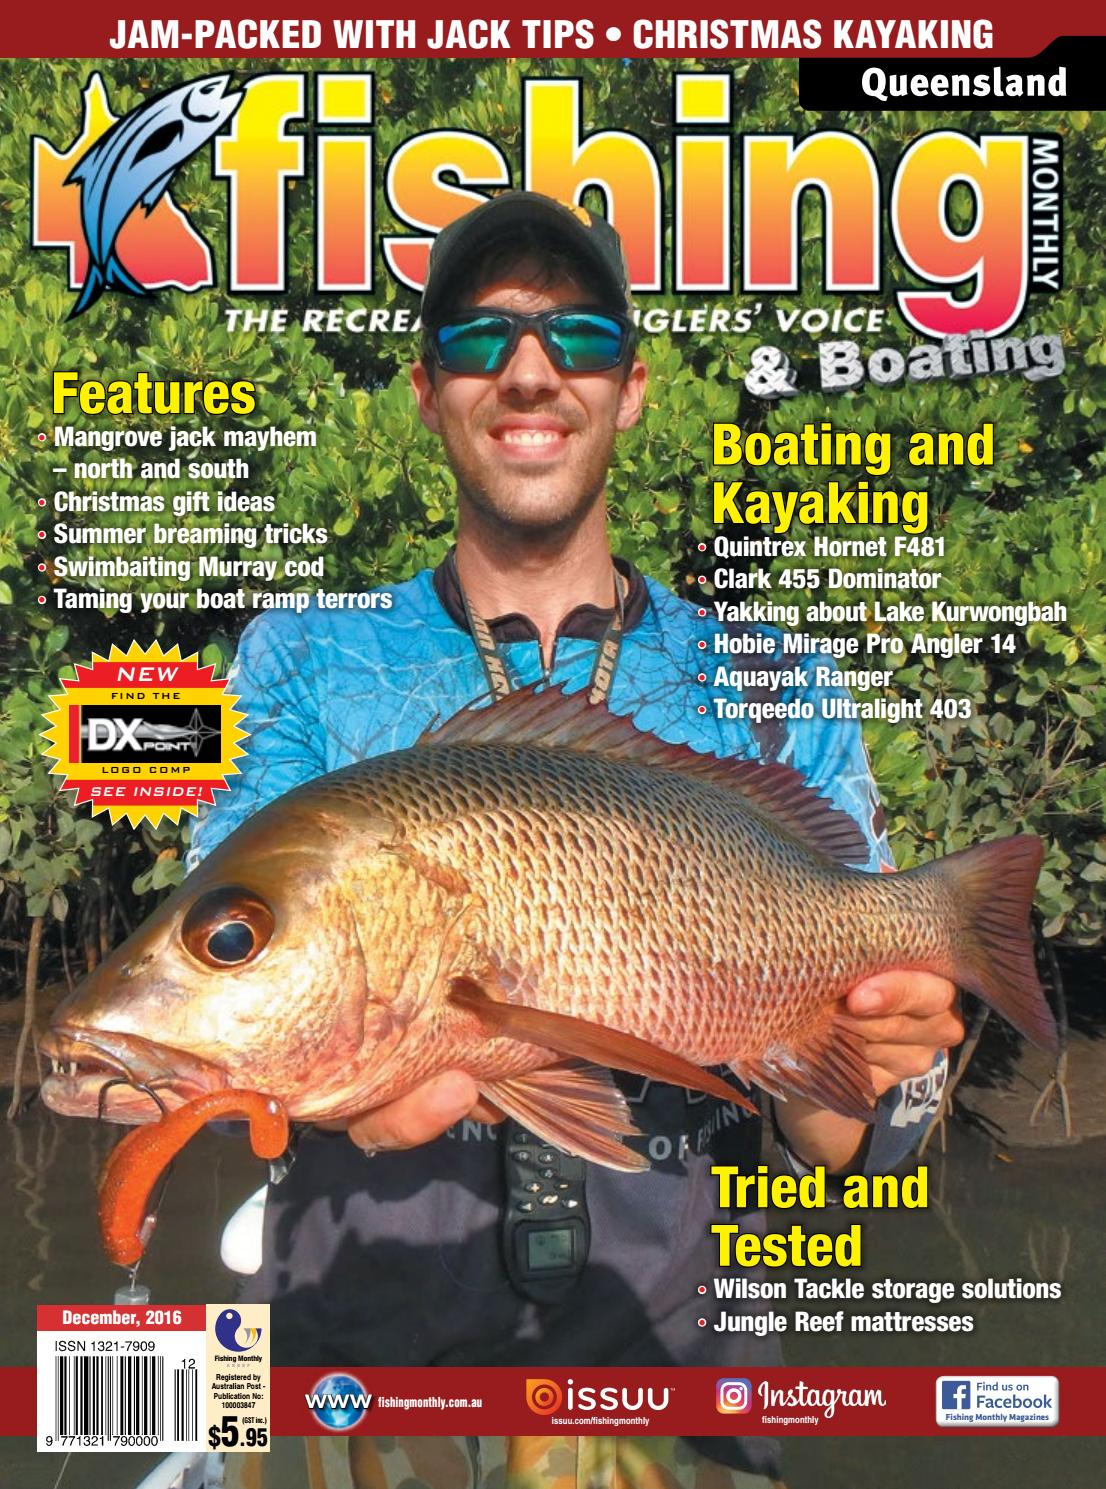 Queensland Fishing Monthly December 2016 By Issuu Lure Minnow 85 Cm 68gr Crank Bait Treble Hook Crankbait